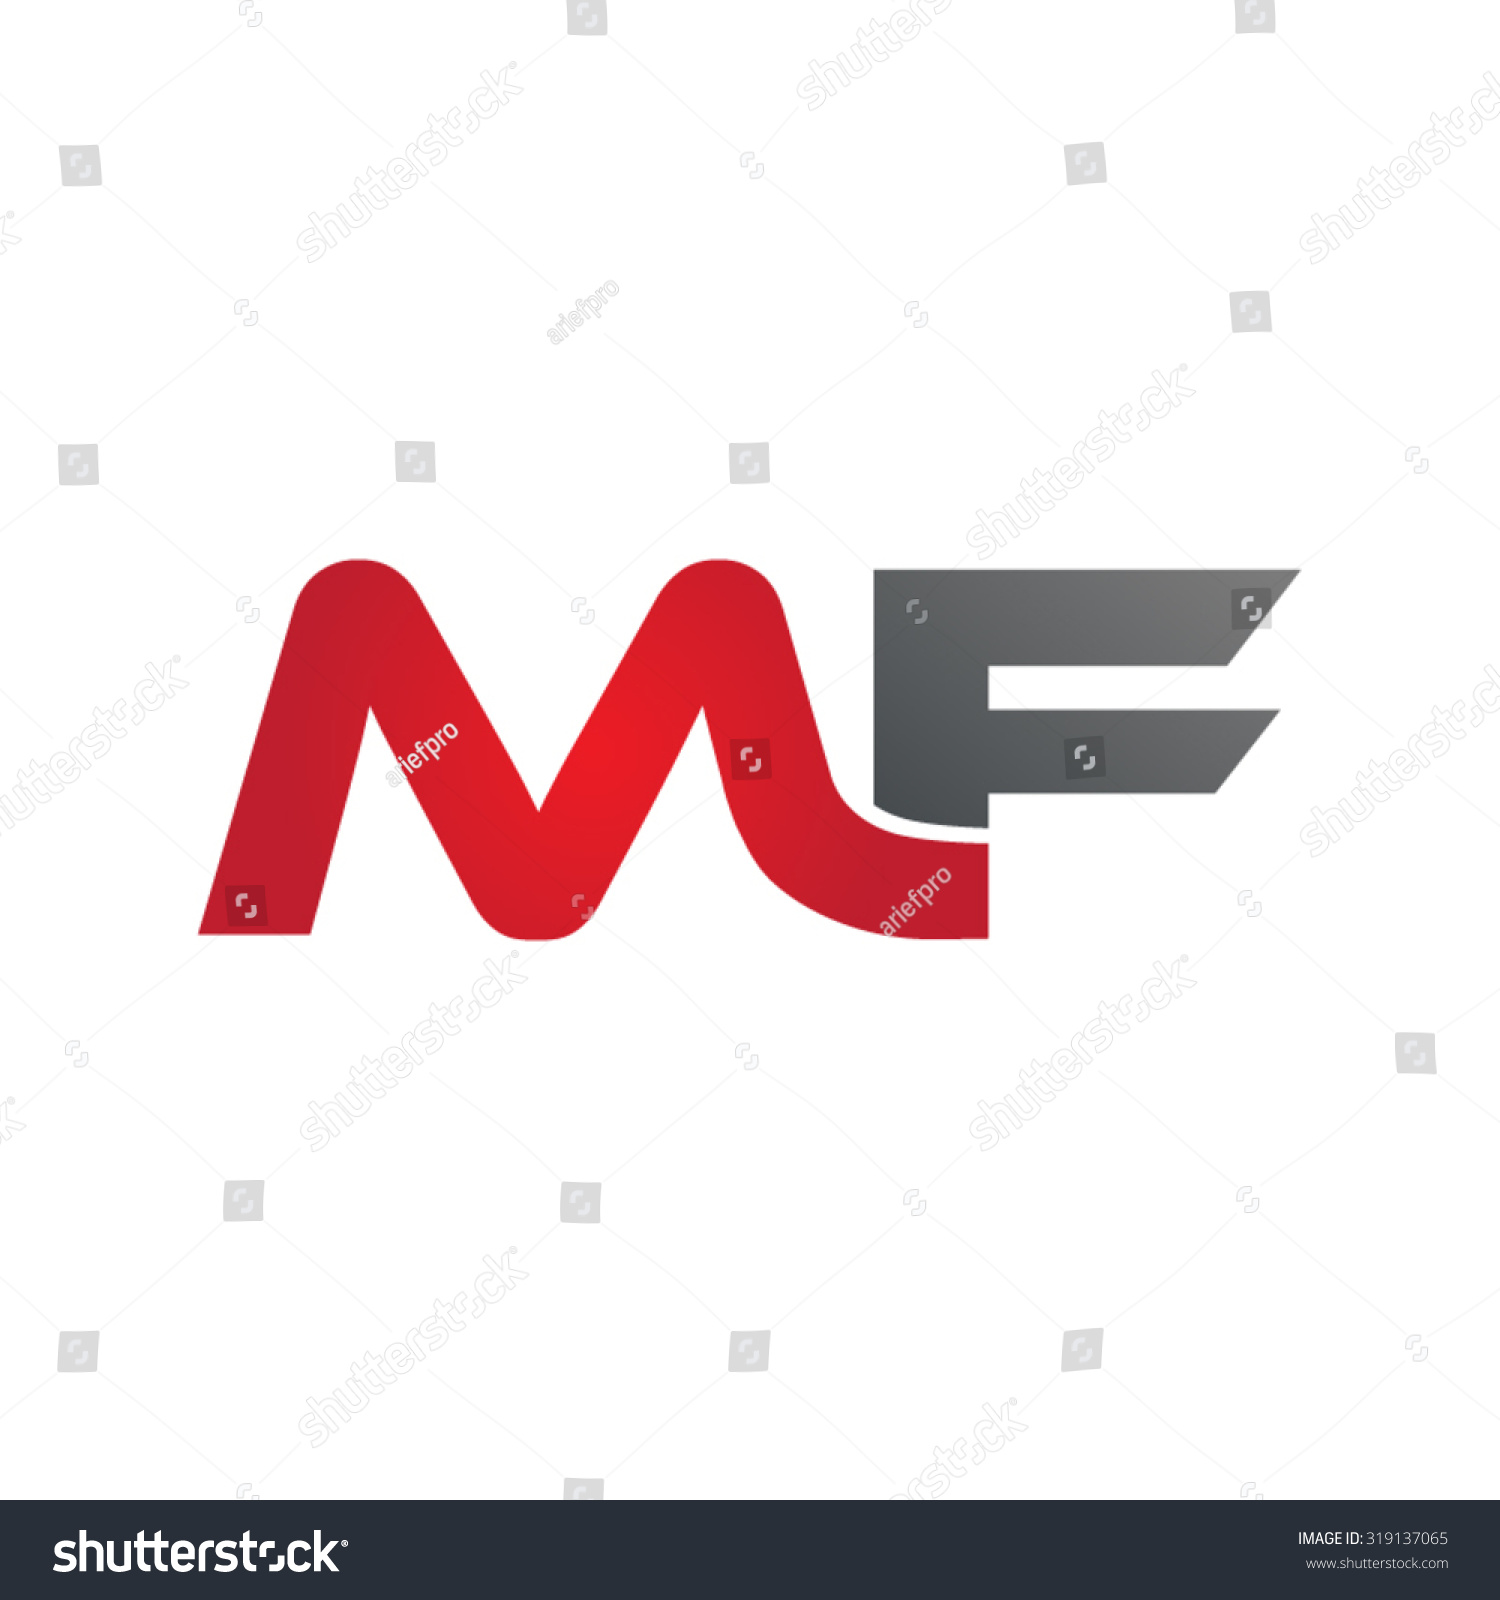 Mf Group Mf Company Group Linked Letter Logo Stock Vector Royalty Free